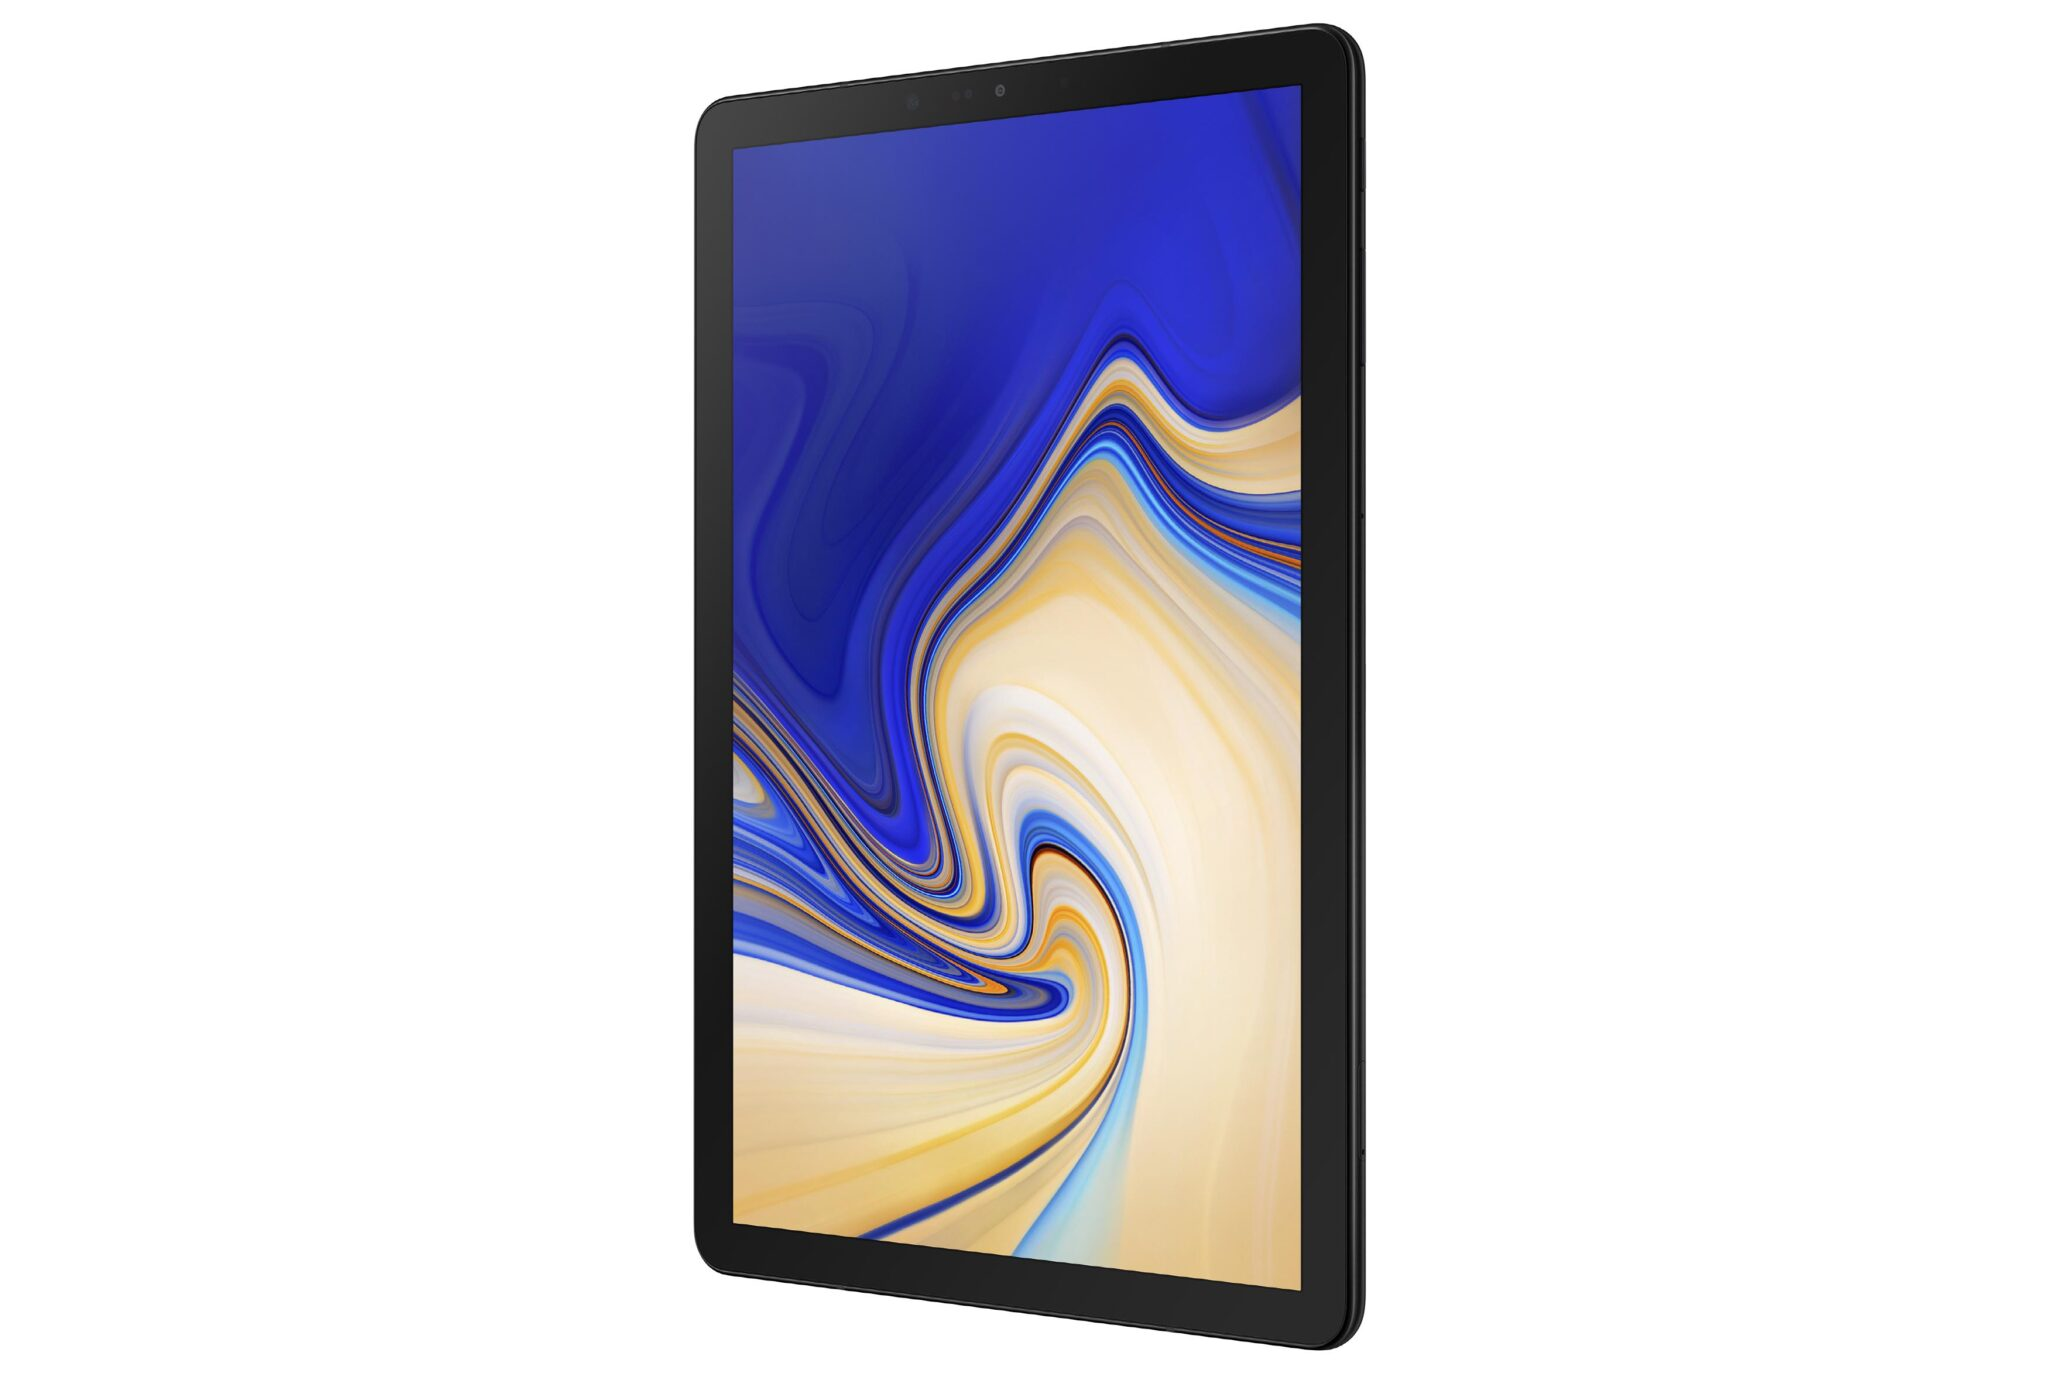 Galaxy Tab S4 Wi-Fi Model Receiving Its Android Pie Update in the US